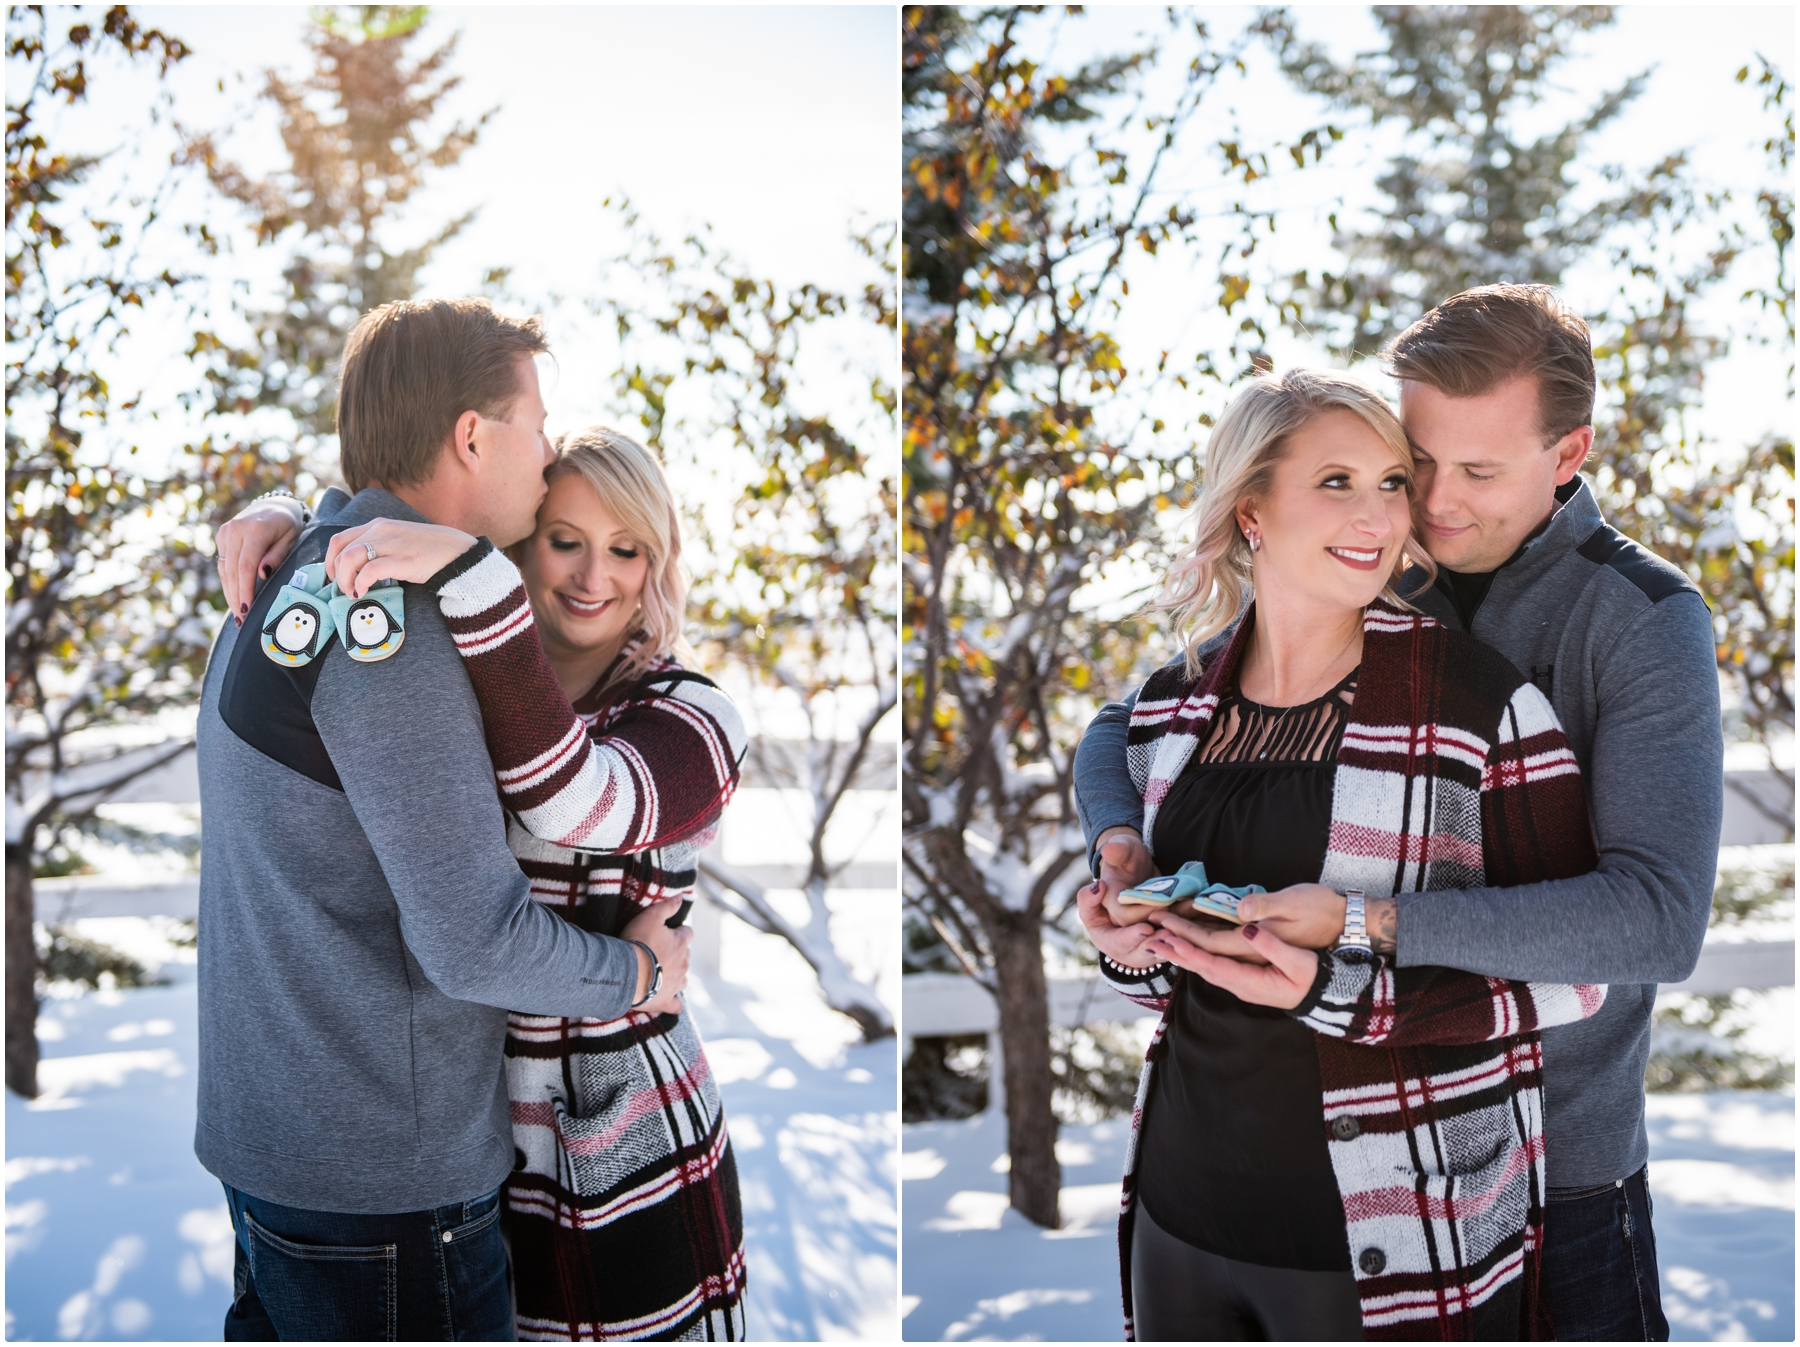 Calgary Pregnancy Announcement Photography